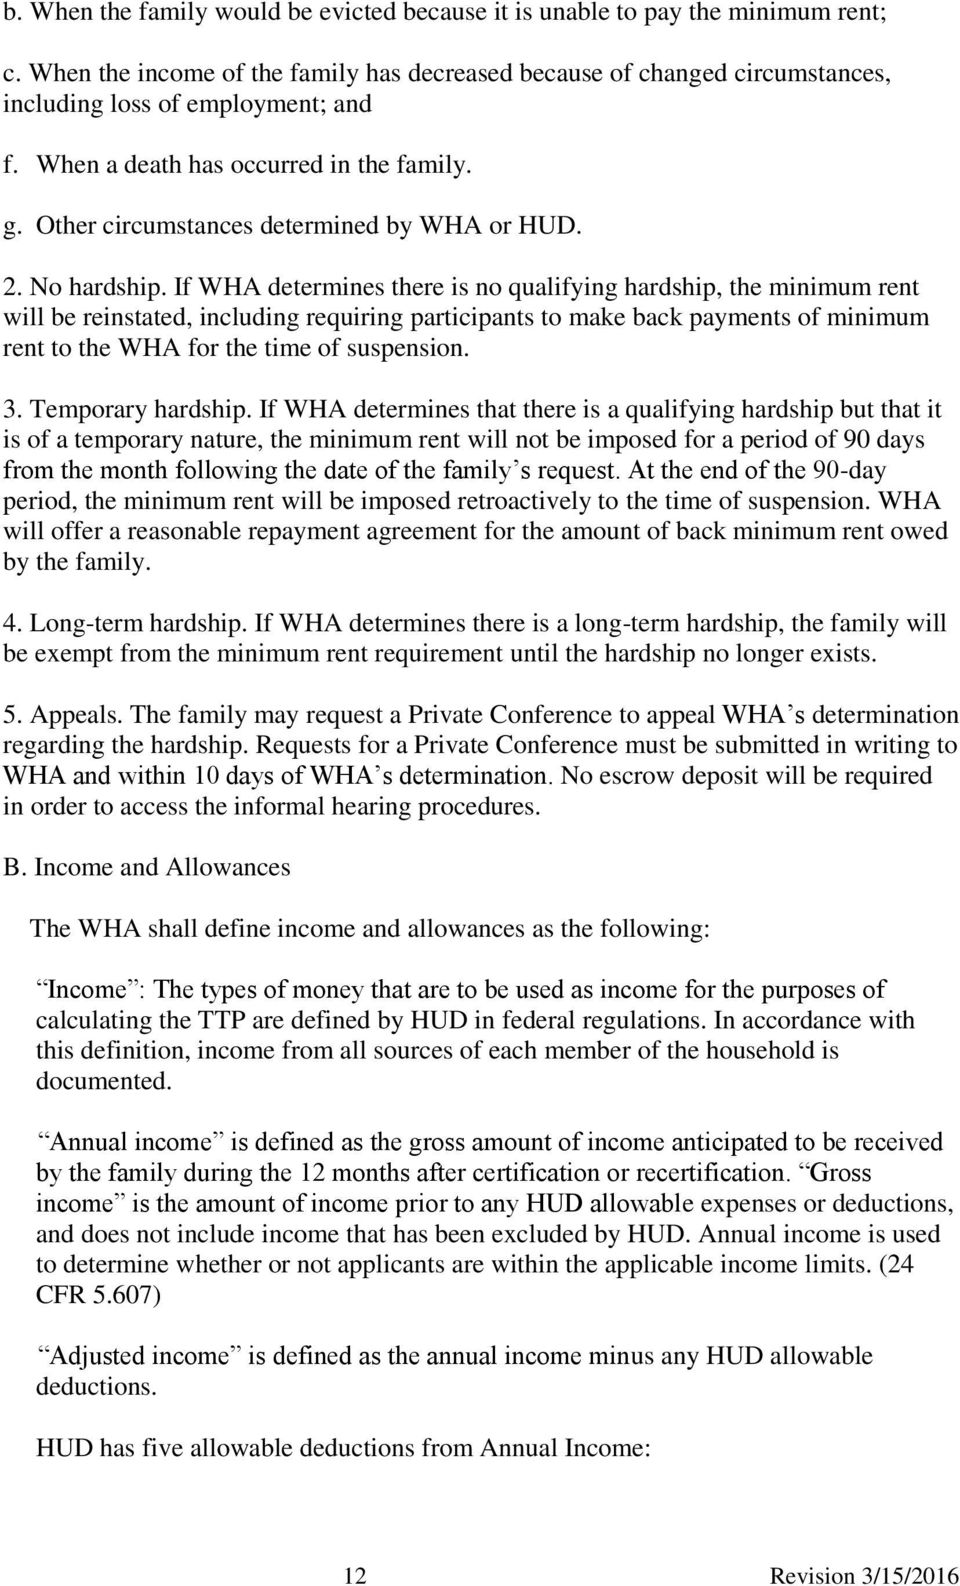 If WHA determines there is no qualifying hardship, the minimum rent will be reinstated, including requiring participants to make back payments of minimum rent to the WHA for the time of suspension. 3.